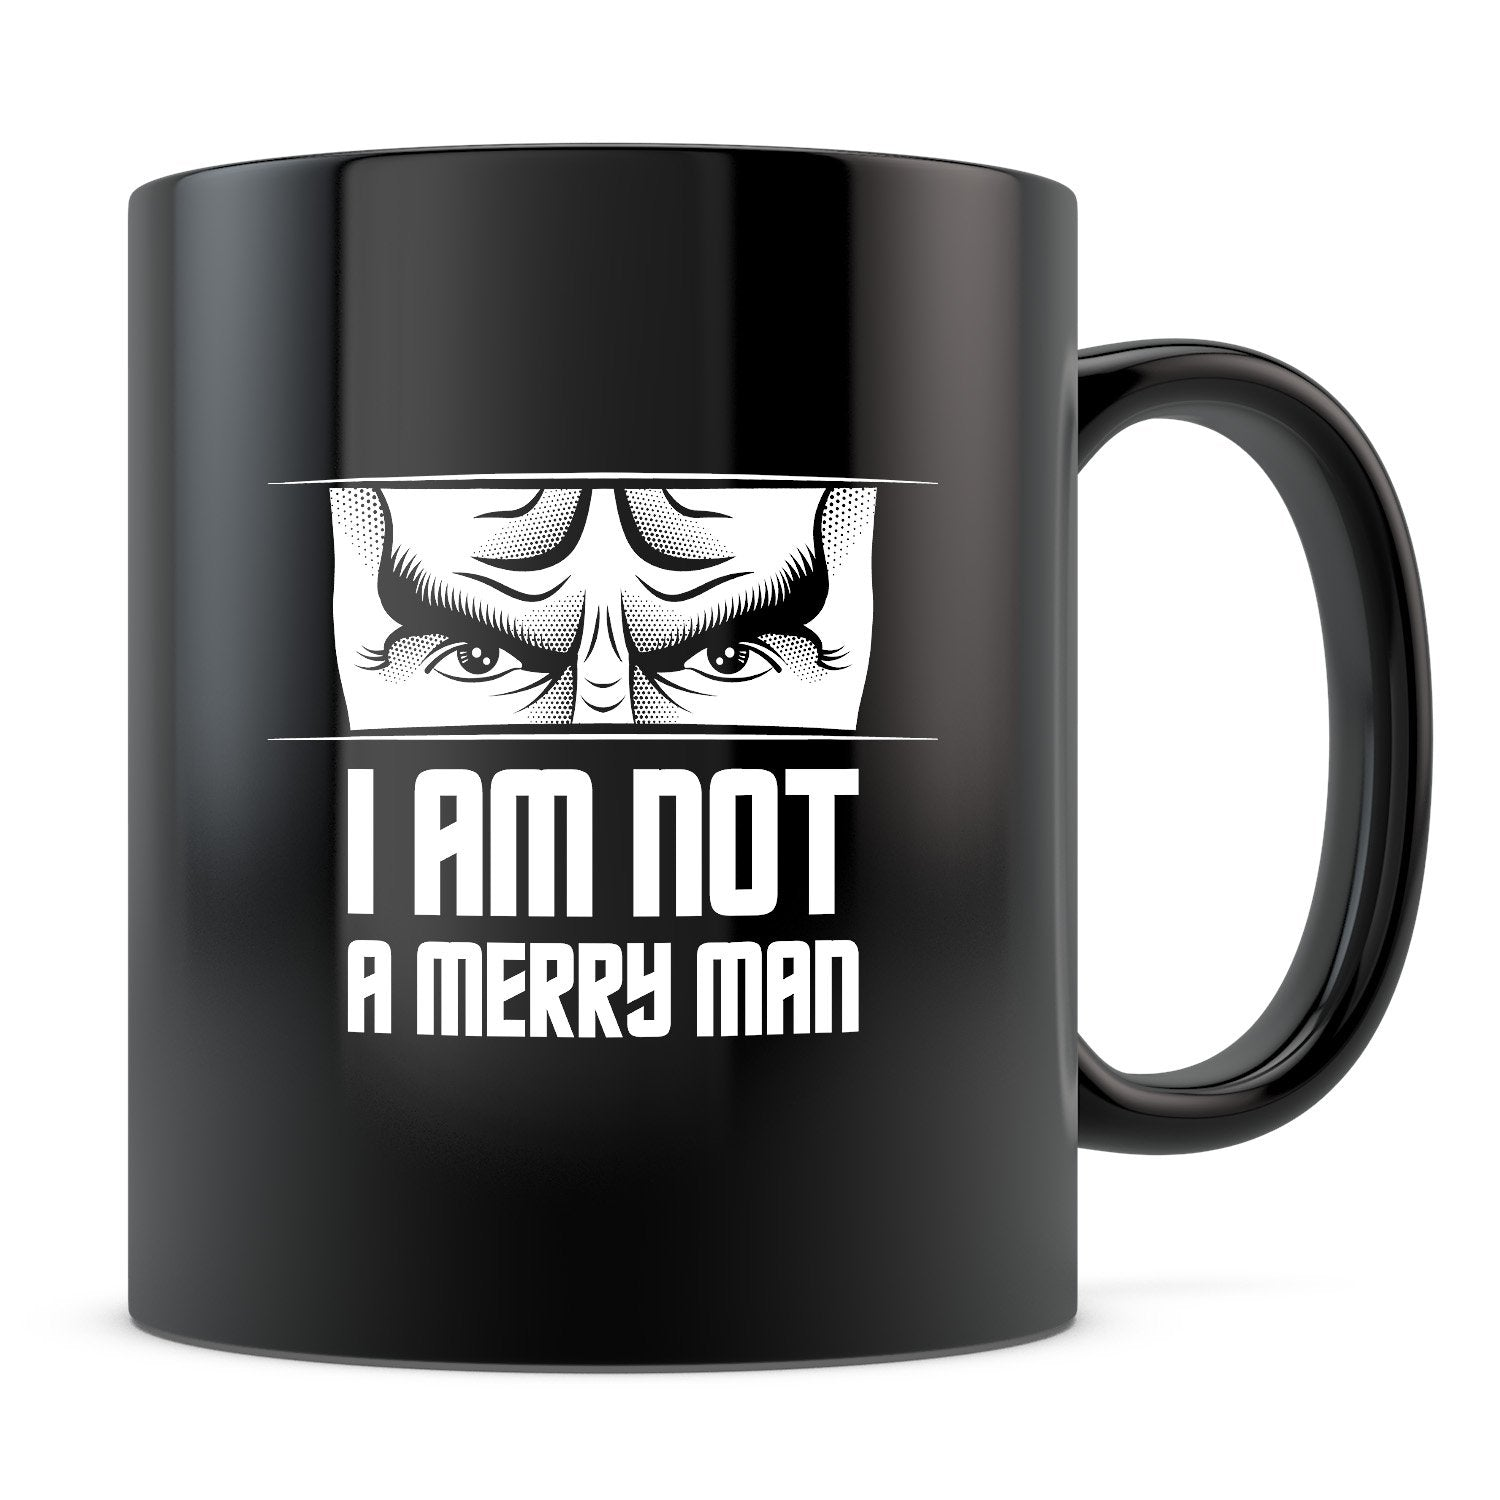 Not a Merry Man - 11oz/15oz Black Mug-Coffee Mug-CustomCat-11oz Mug-Black-